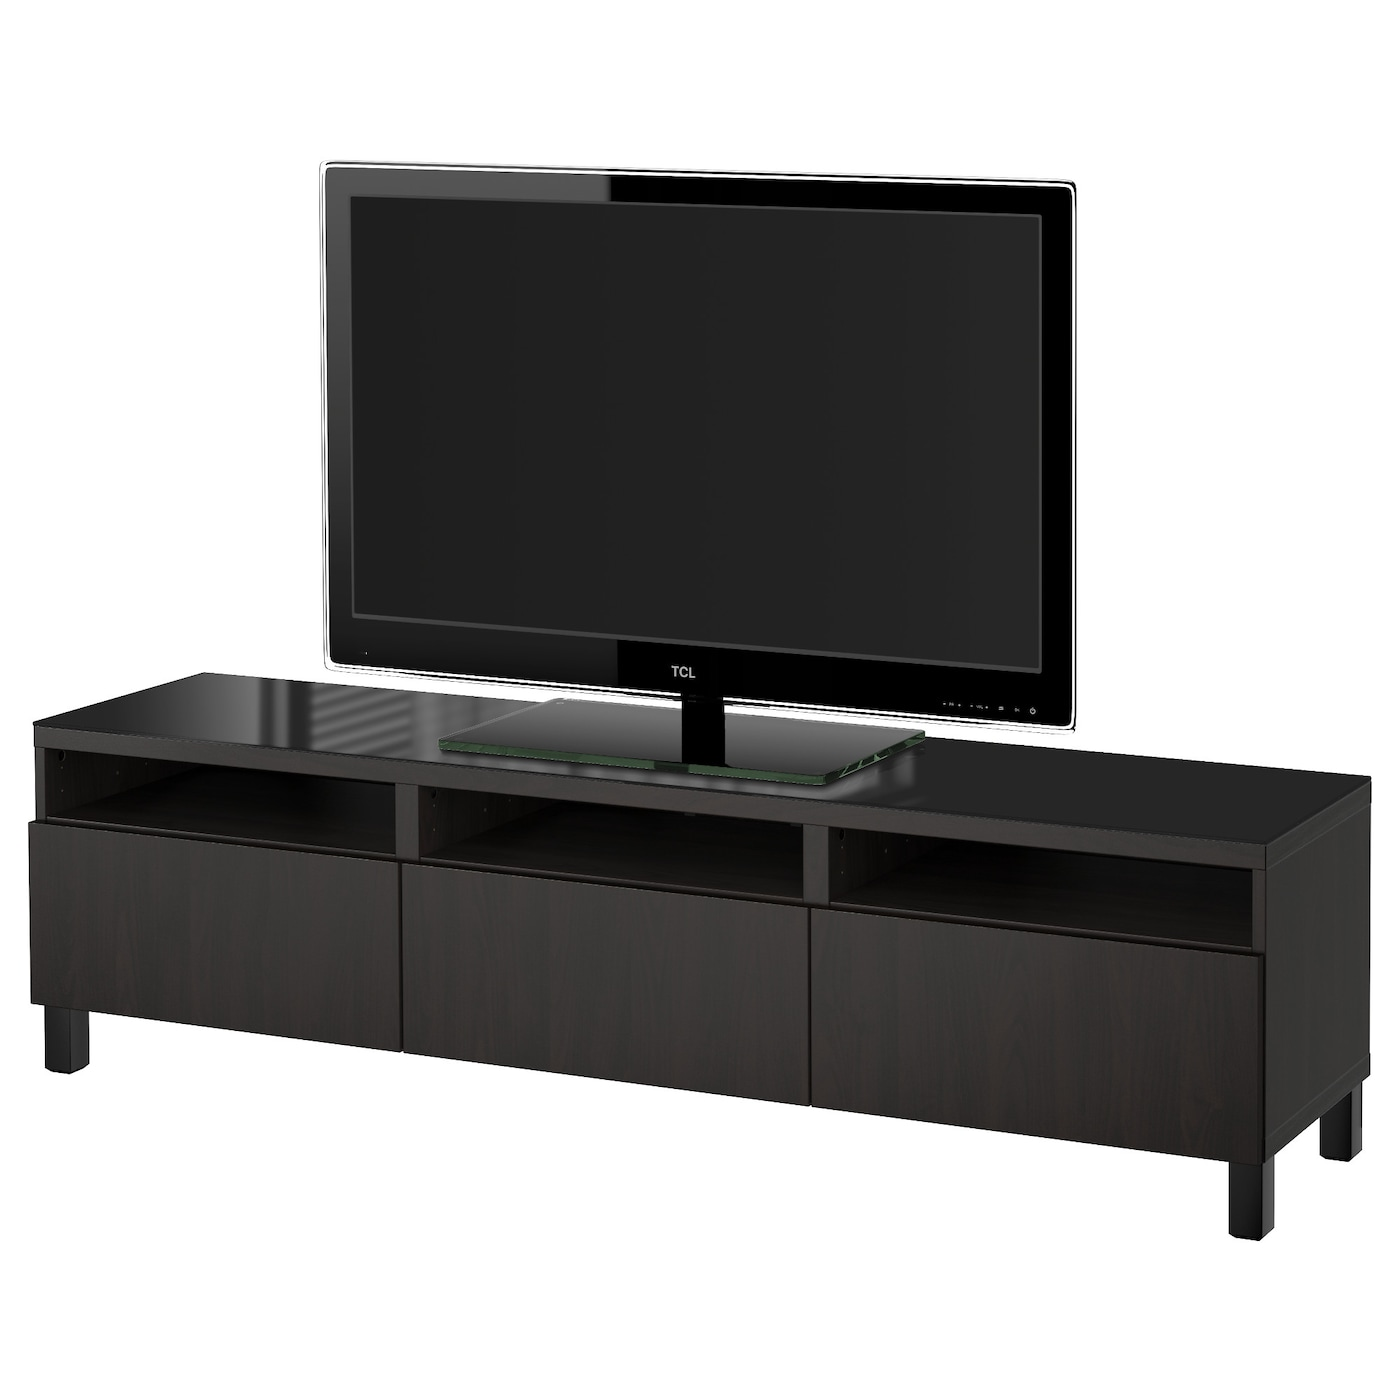 tv tables tv benches ikea. Black Bedroom Furniture Sets. Home Design Ideas